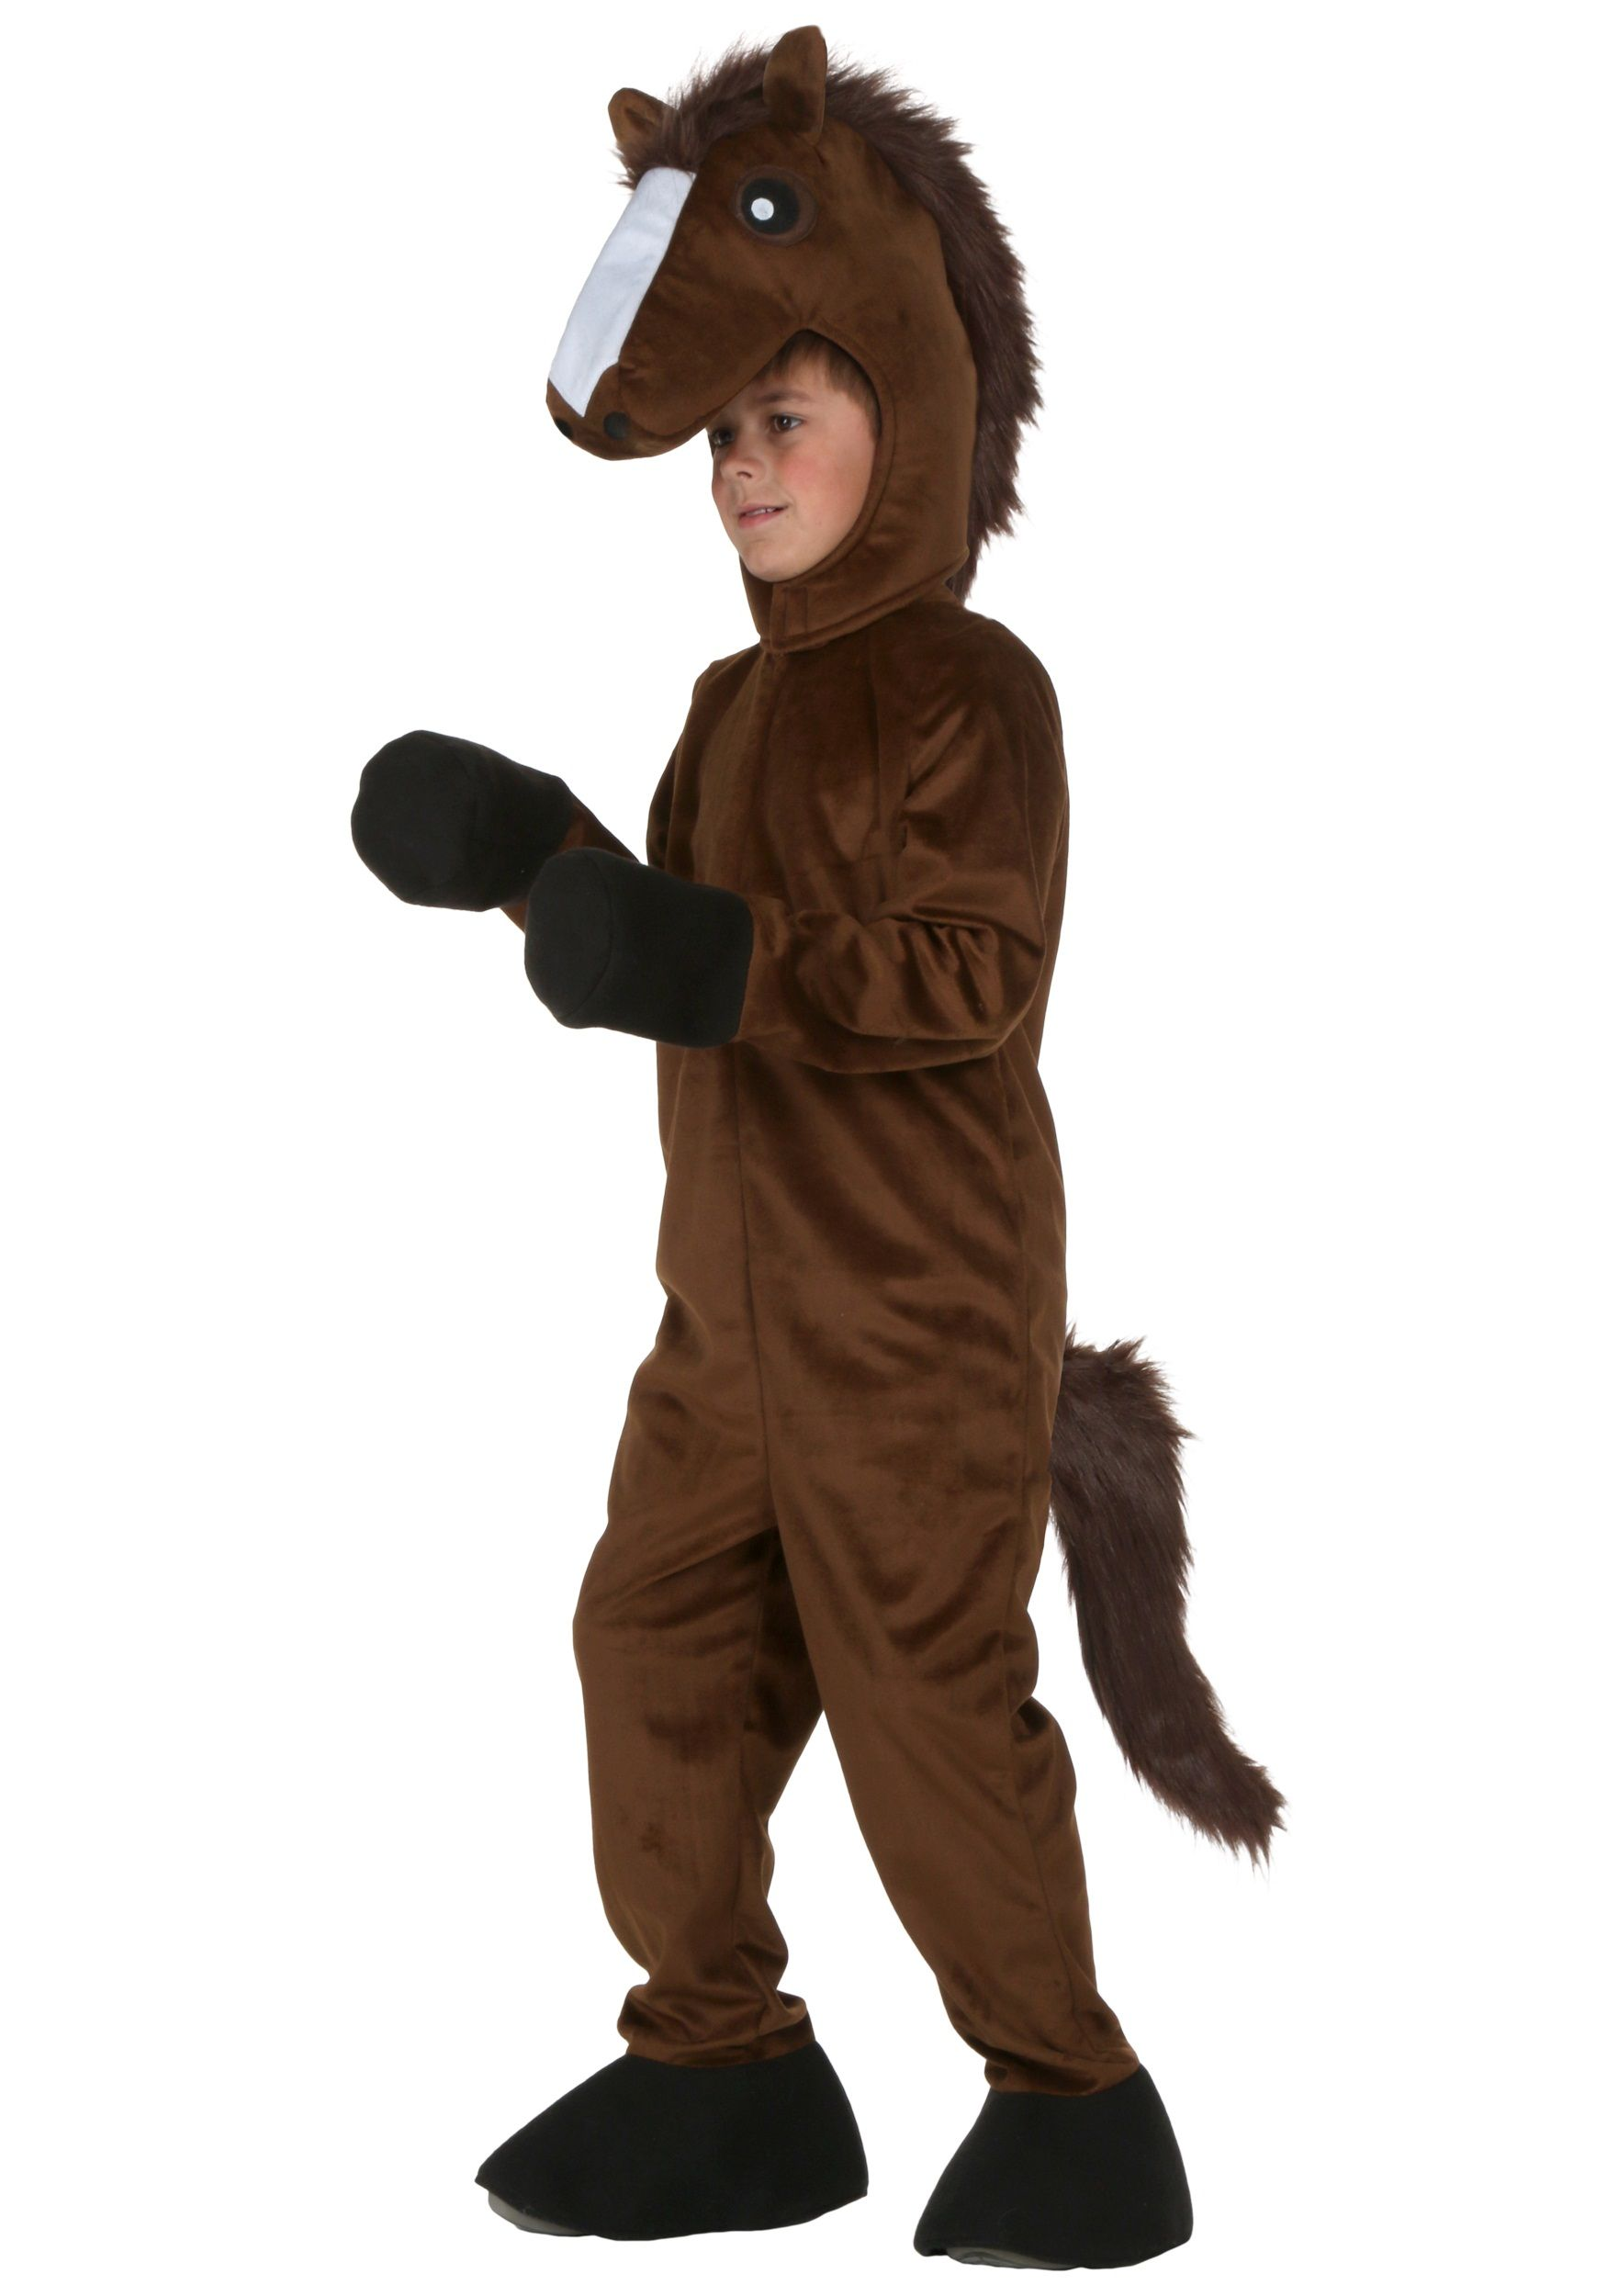 Child Horse Costume | Horse costumes, Costumes and Halloween costumes